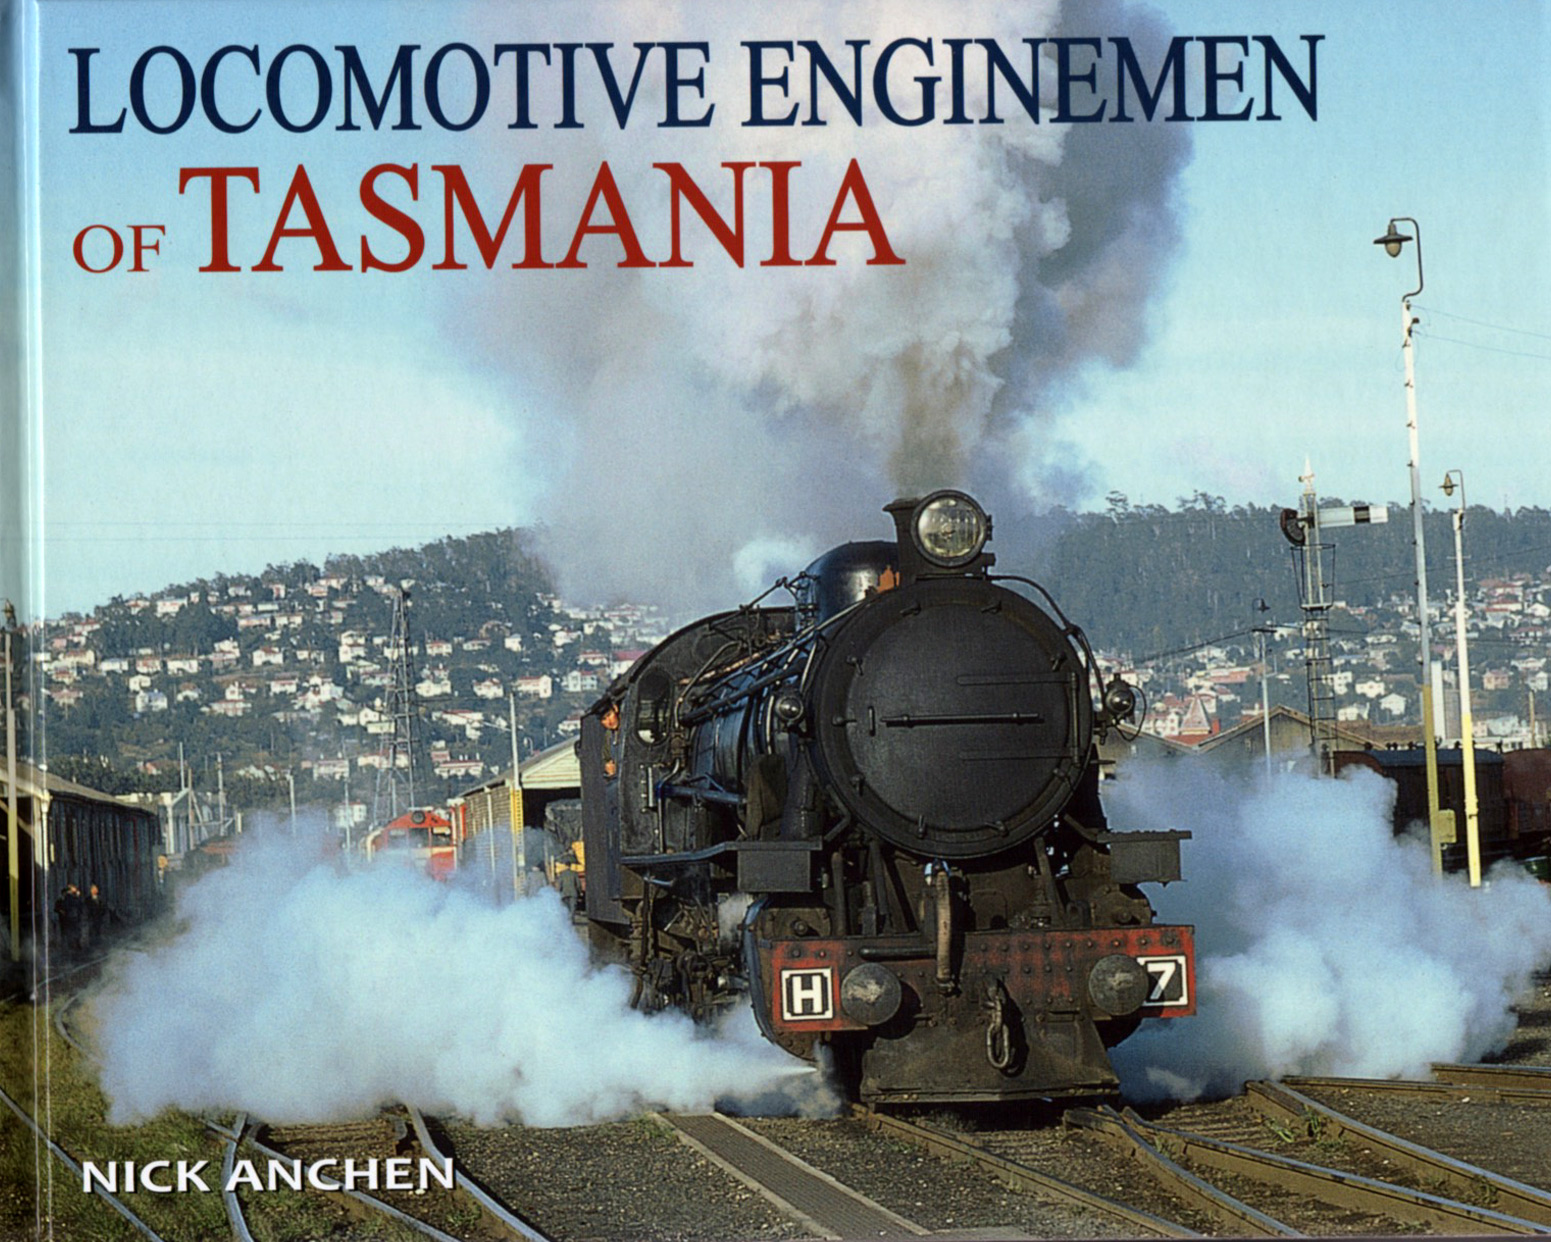 Lomomotive Enginemen of Tasmania